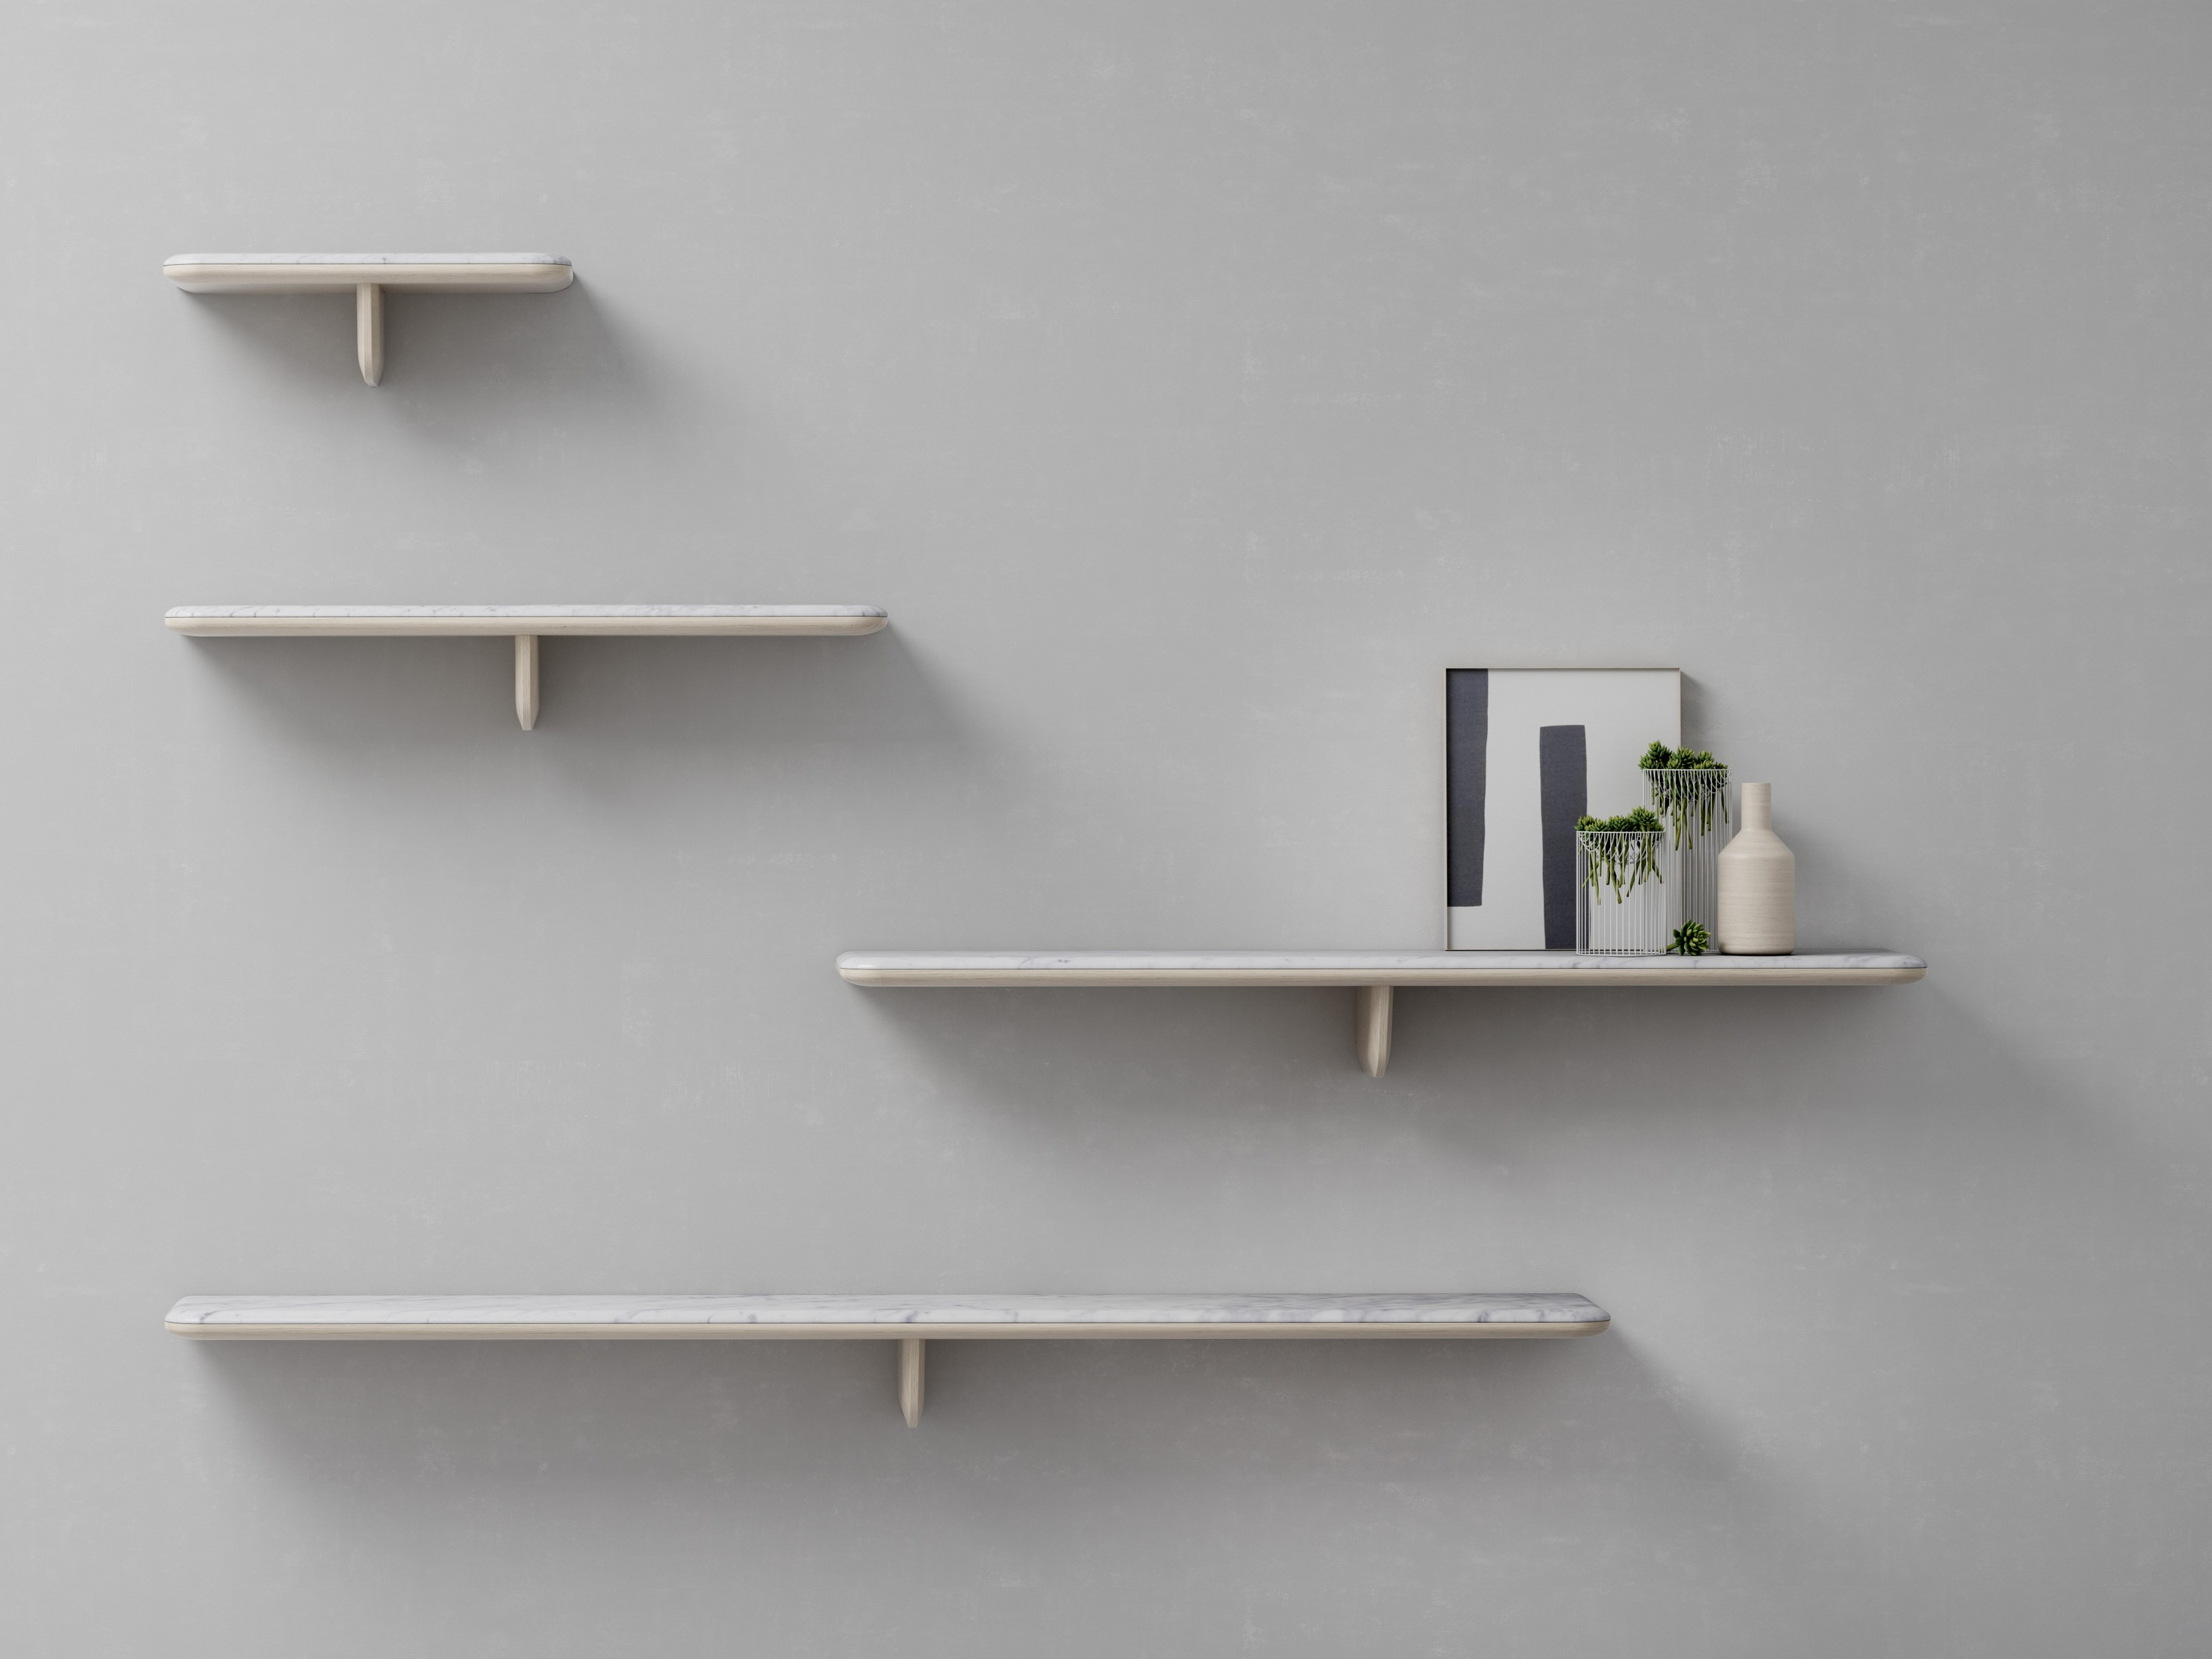 Egala Carrara Marble Wall Shelf By Retegui Design Jean